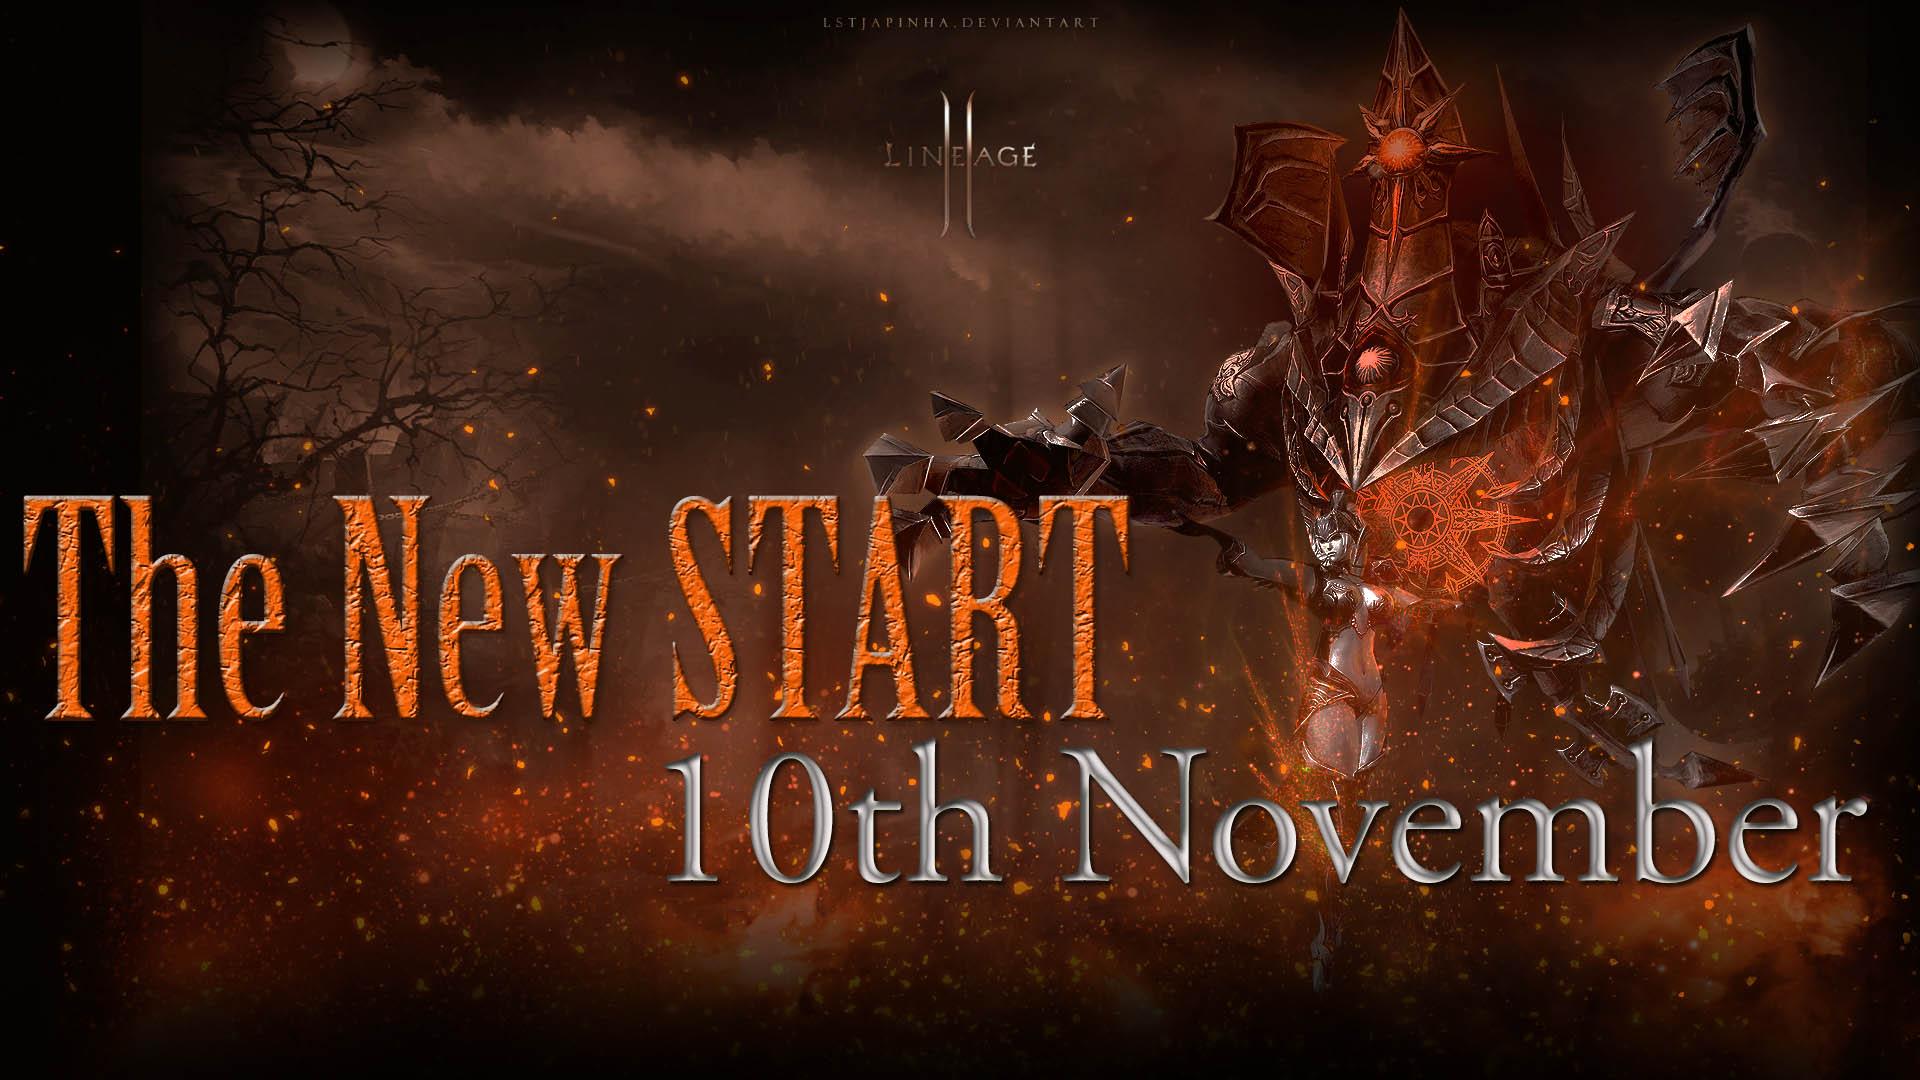 The New START: 10th November + Bonus & Events!